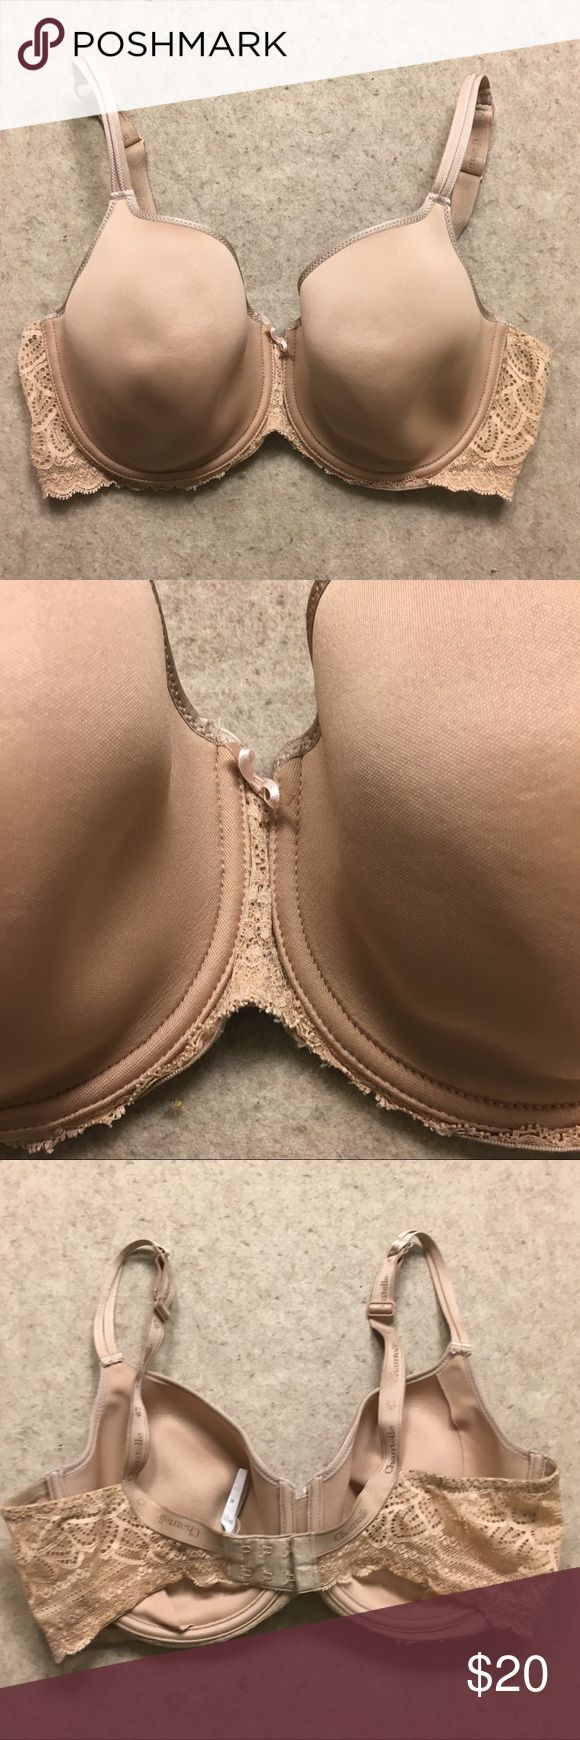 Chantelle Merci T-Shirt Bra Underwire Nude Sz 38DD Chantelle Merci T-Shirt Bra Underwire Lace Detail Women's Nude Beige Size 38 DD Retail $78 Gently used, no flaws Chantelle Intimates & Sleepwear Bras